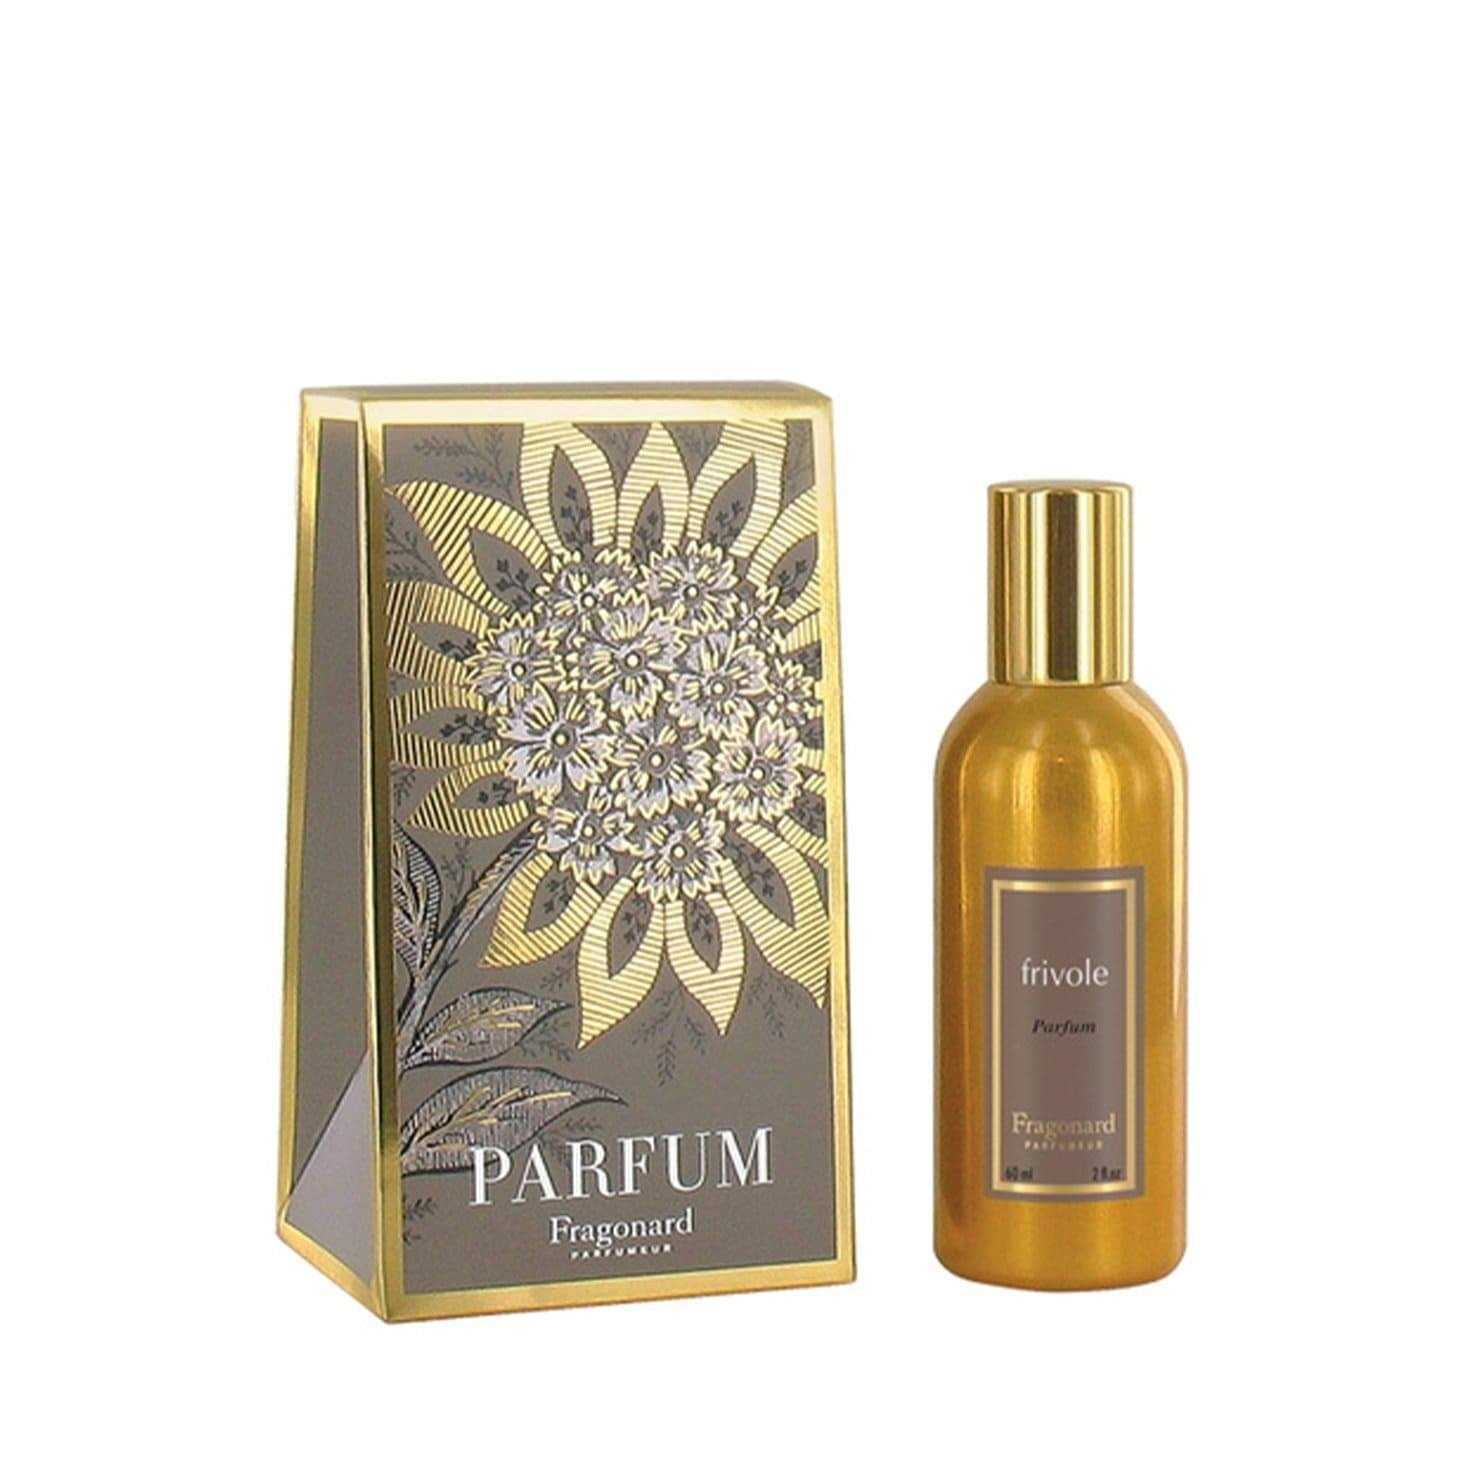 Fragonard Frivole 'Estagon' Parfum 60ml